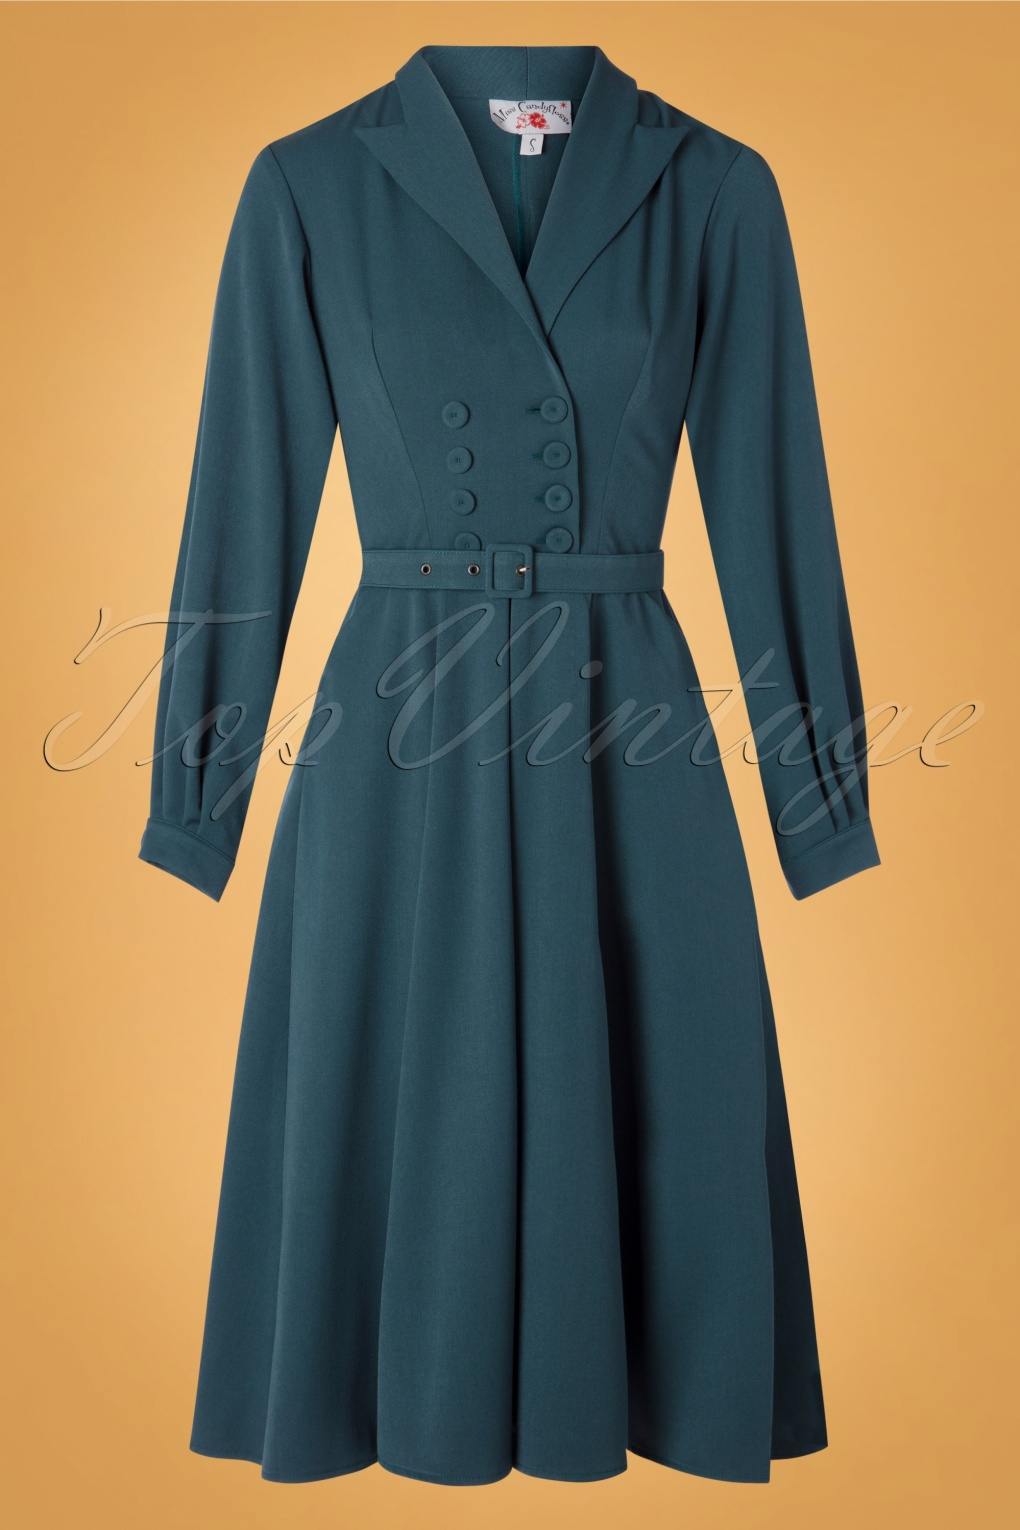 50s Dresses UK | 1950s Dresses, Shoes & Clothing Shops 50s Mabel Kat Swing Dress in Teal £93.69 AT vintagedancer.com